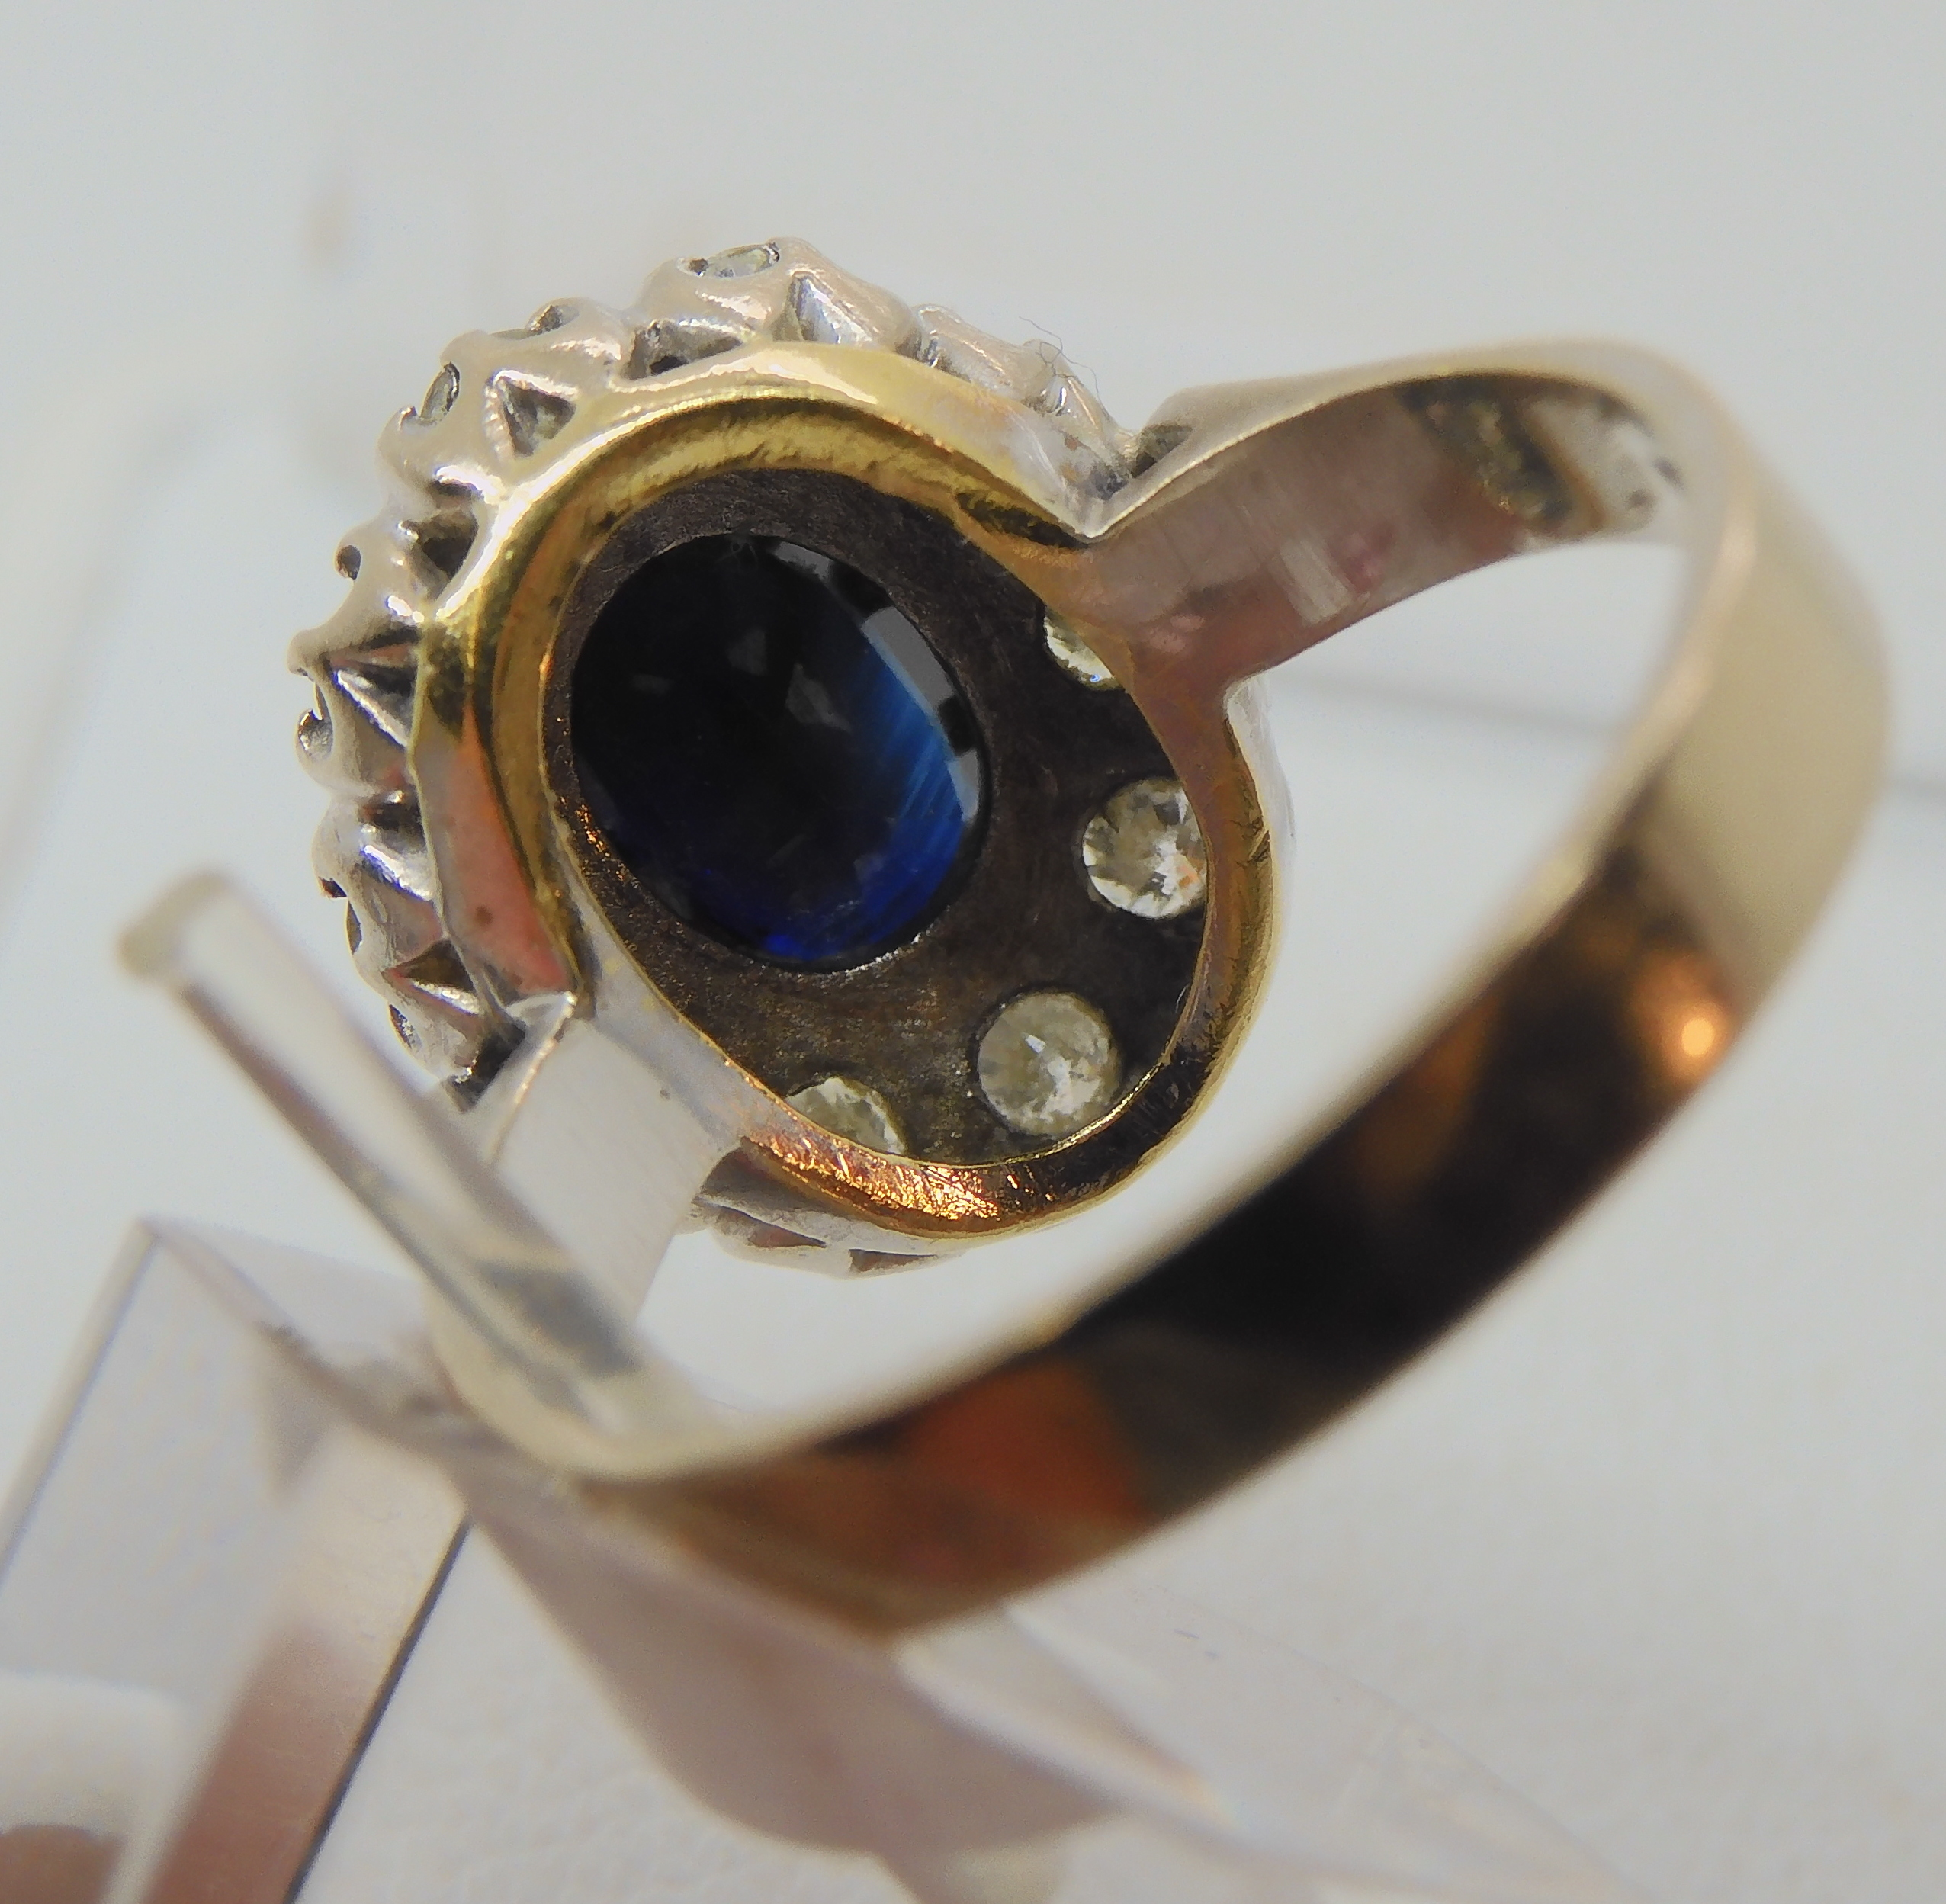 AN 18CT WHITE GOLD SAPPHIRE AND DIAMOND CLUSTER RING set with estimated approx 0.50cts of - Image 6 of 8